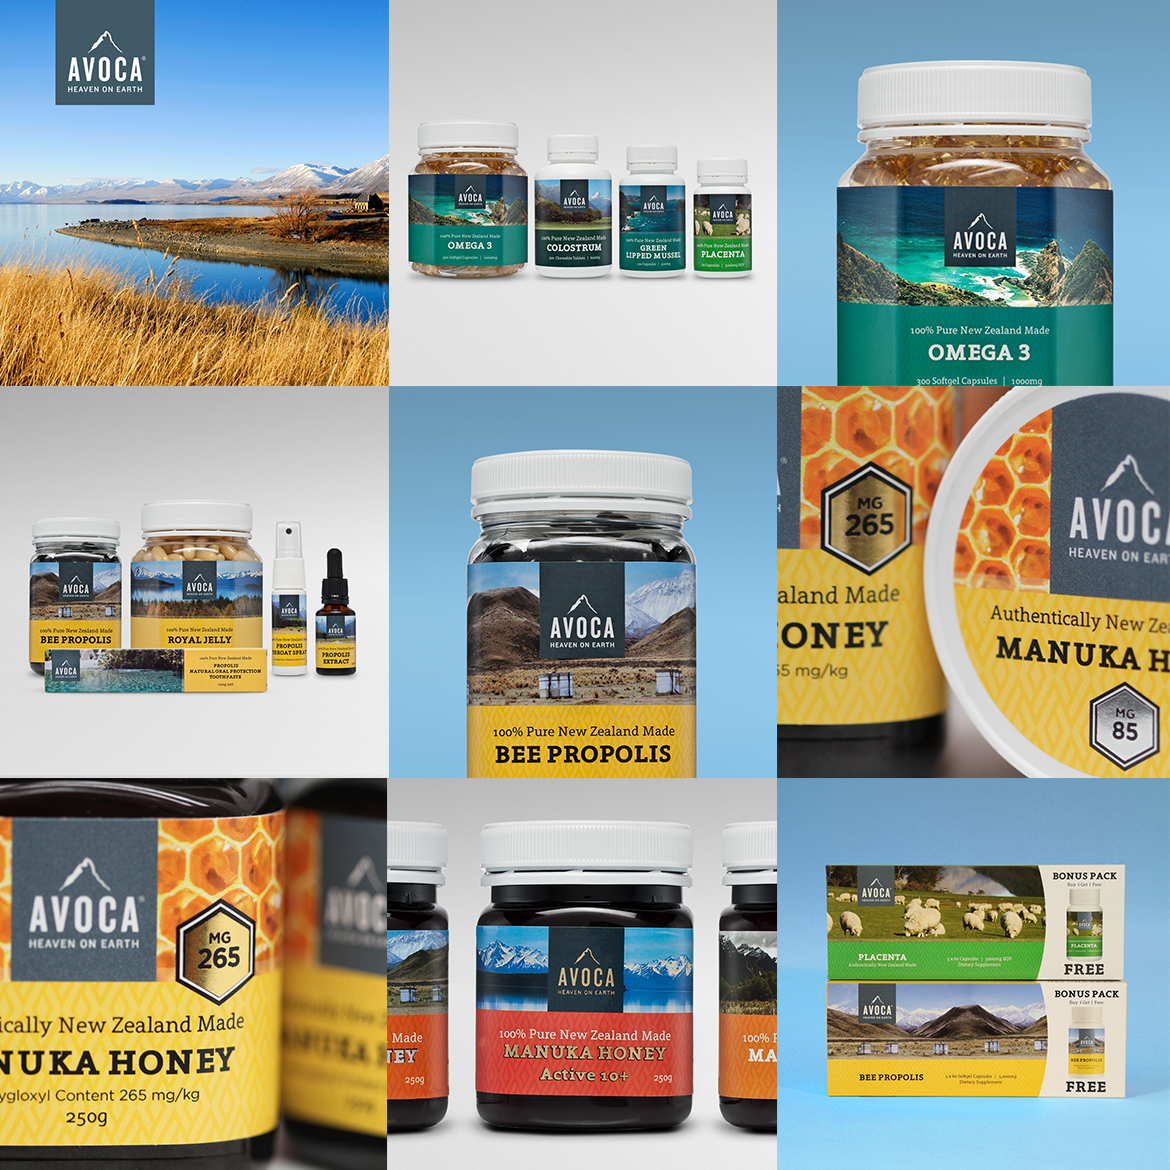 Avoca Health Brand and Packaging Design